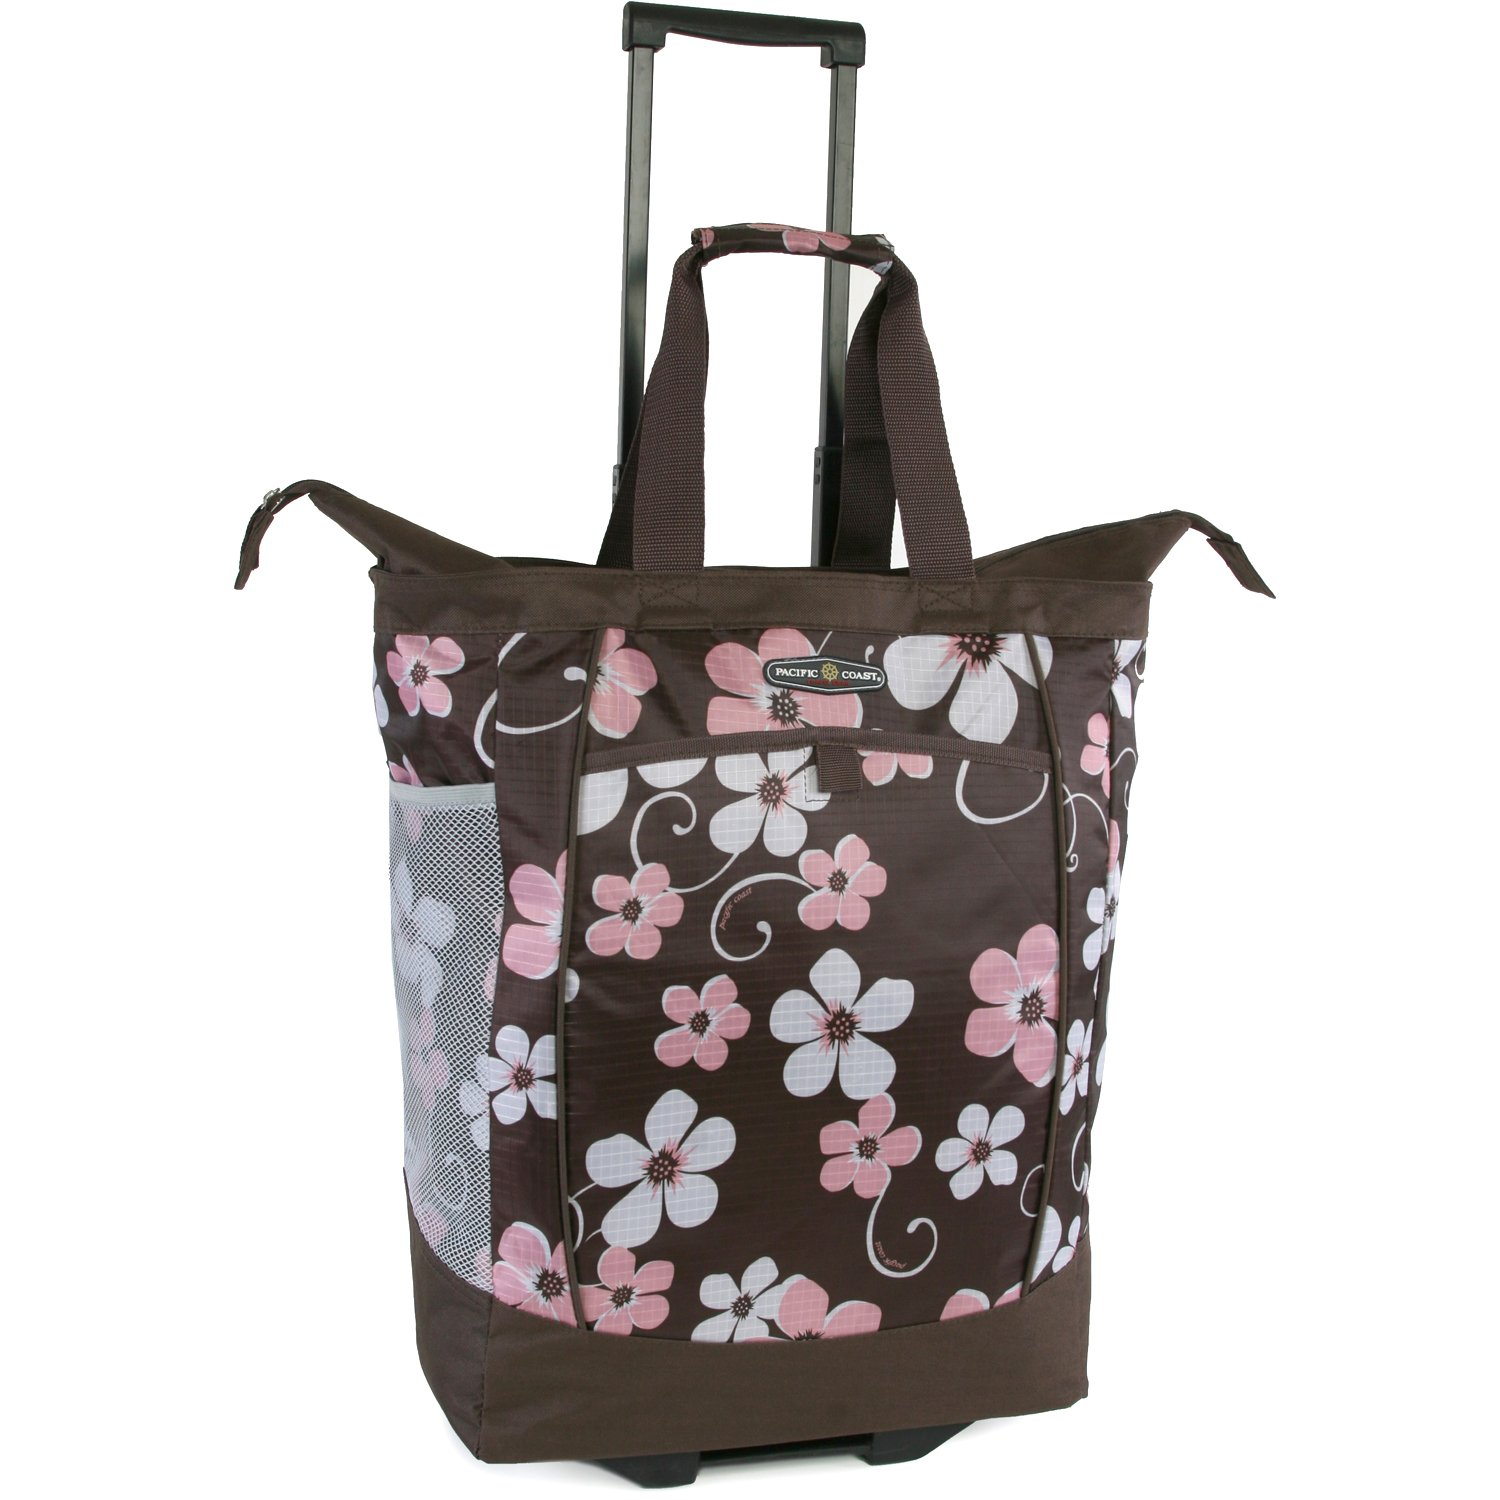 Pacific Coast Signature Large Rolling Shopper Tote Bag, Hawaiian Pink